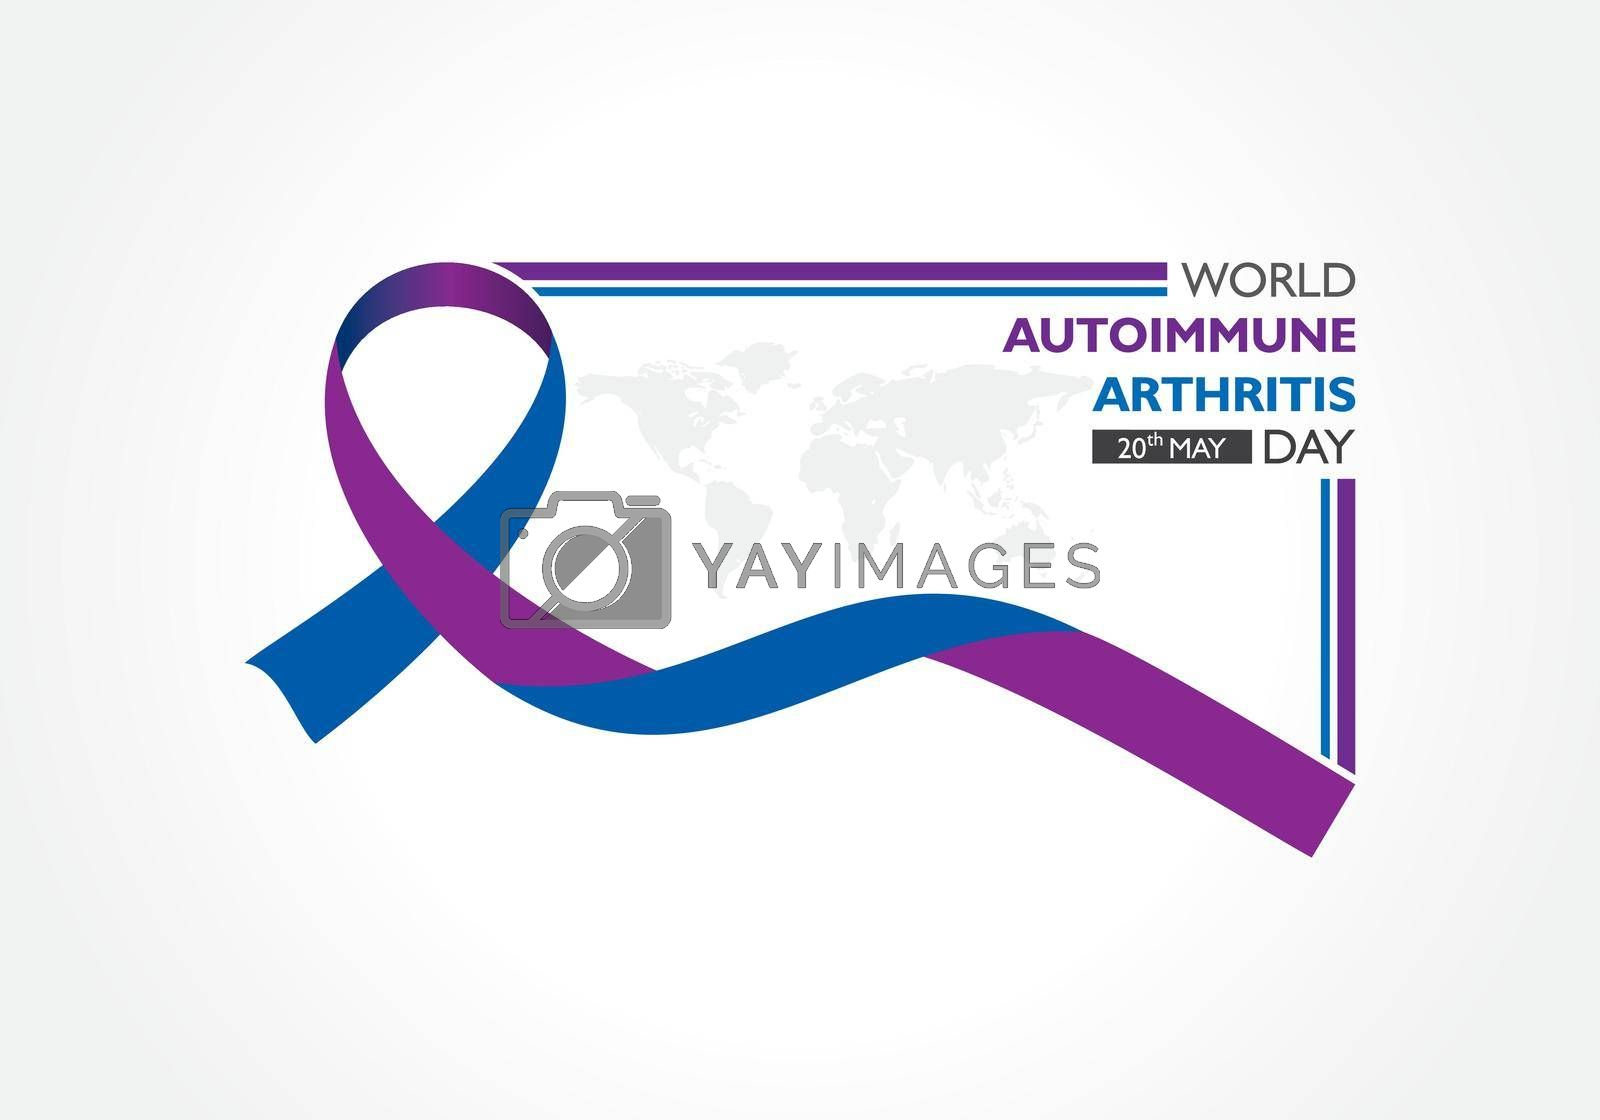 Royalty free image of World Autoimmune Arthritis Day observed on 20th May by graphicsdunia4you